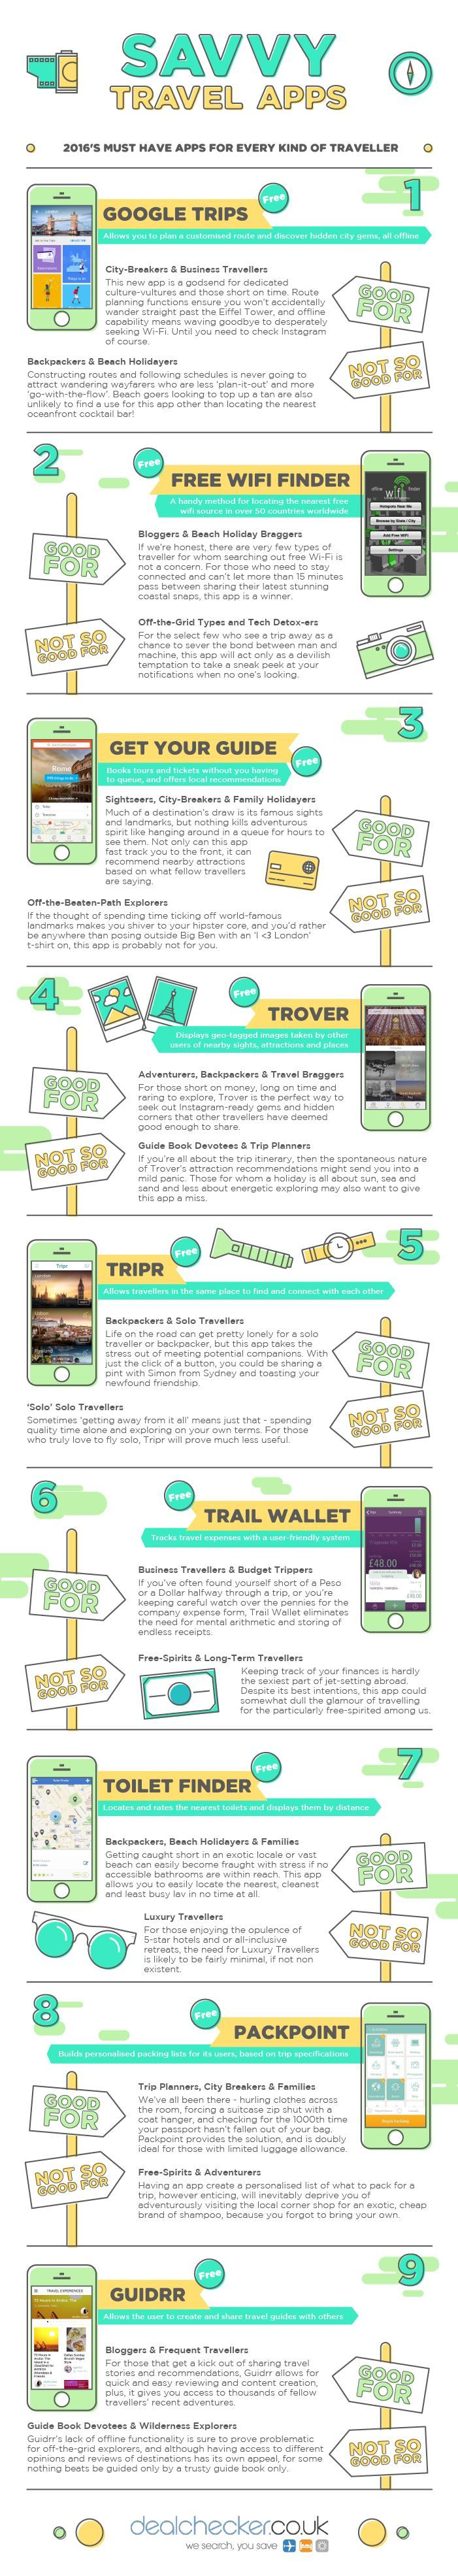 2016's Must Have Apps for Every Kind of Traveller #Infographic #Travel